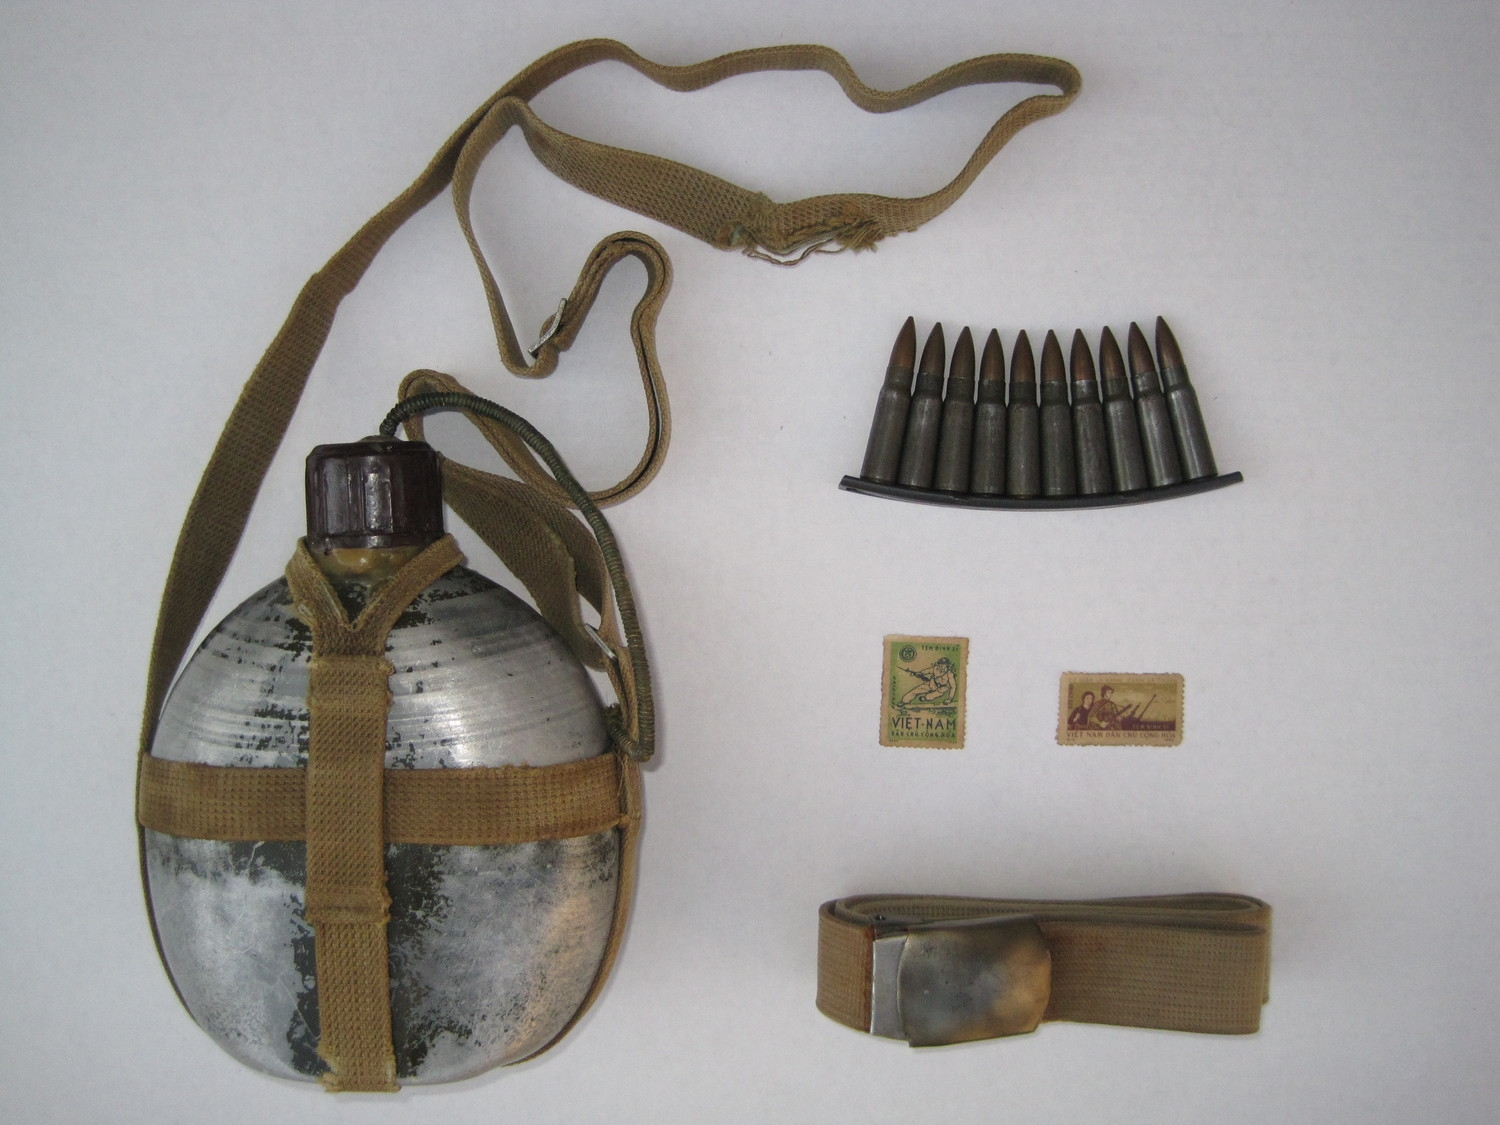 The sniper'scanteen,stripper clip, postage stamps, and belt